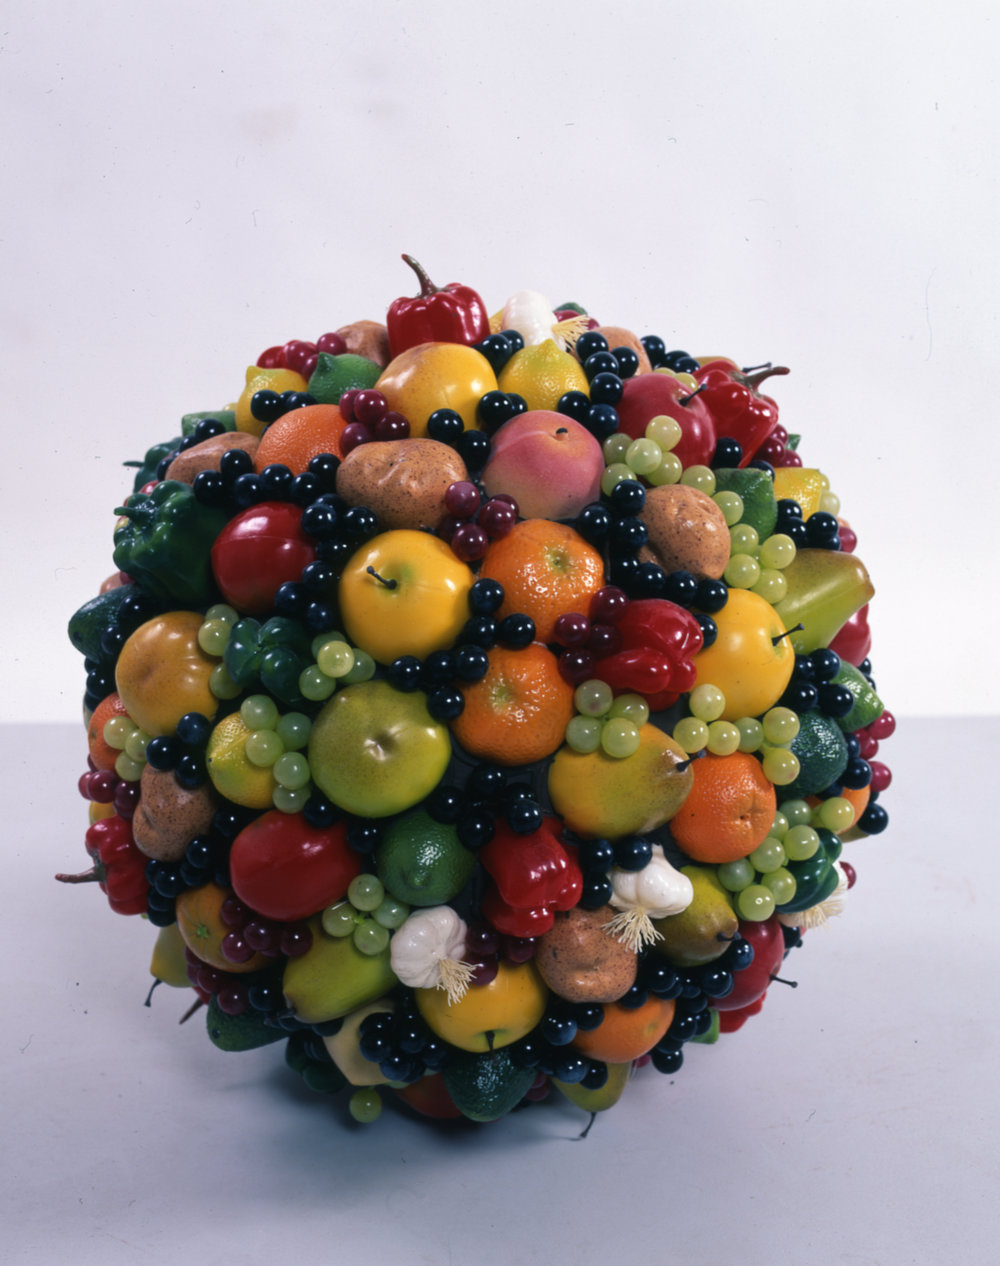 Utopian Ornament, 2003 styrofoam sphere with plastic fruits diam.: 61 cm - 24 inches